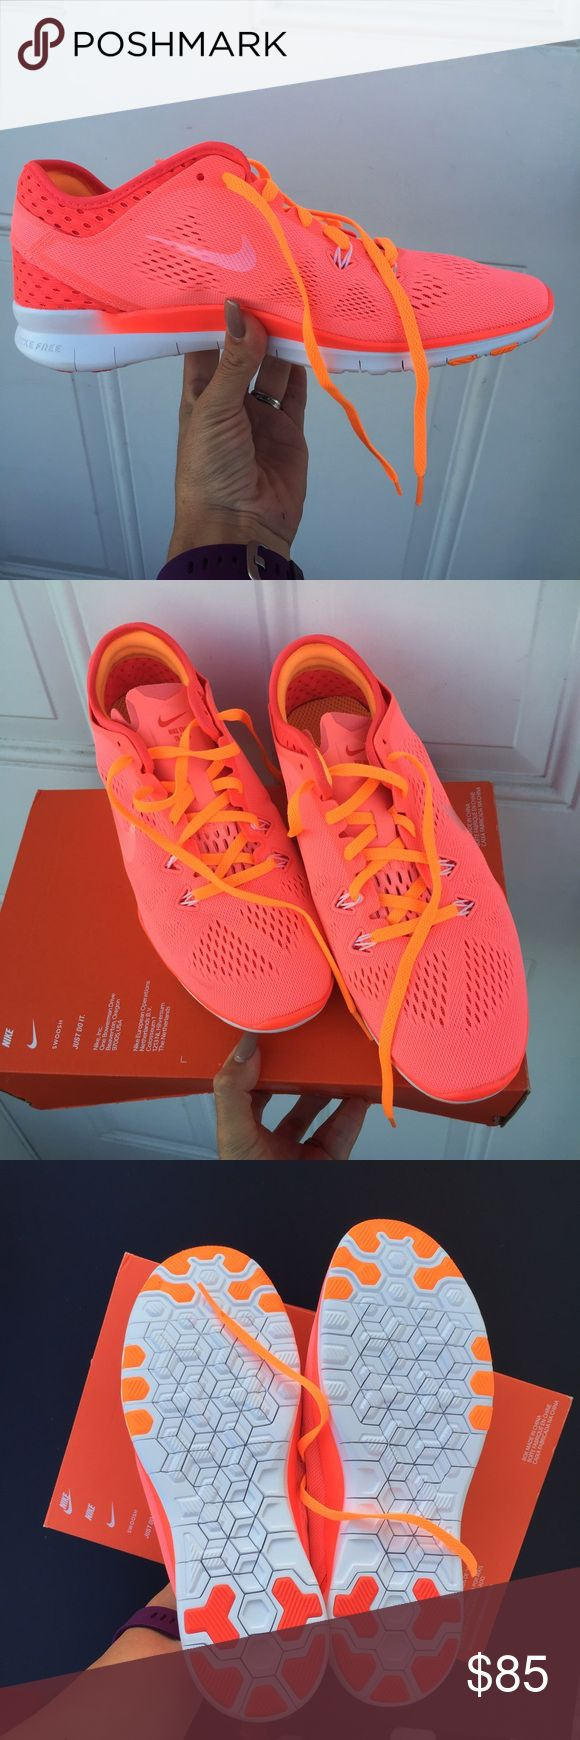 NIKE Free 5.0 tr fit lv glw Sz 8.5 new NIKE Free 5.0 tr fit lv glw Sz 8.5 new box is missing the Lid item #2050 Nike Shoes